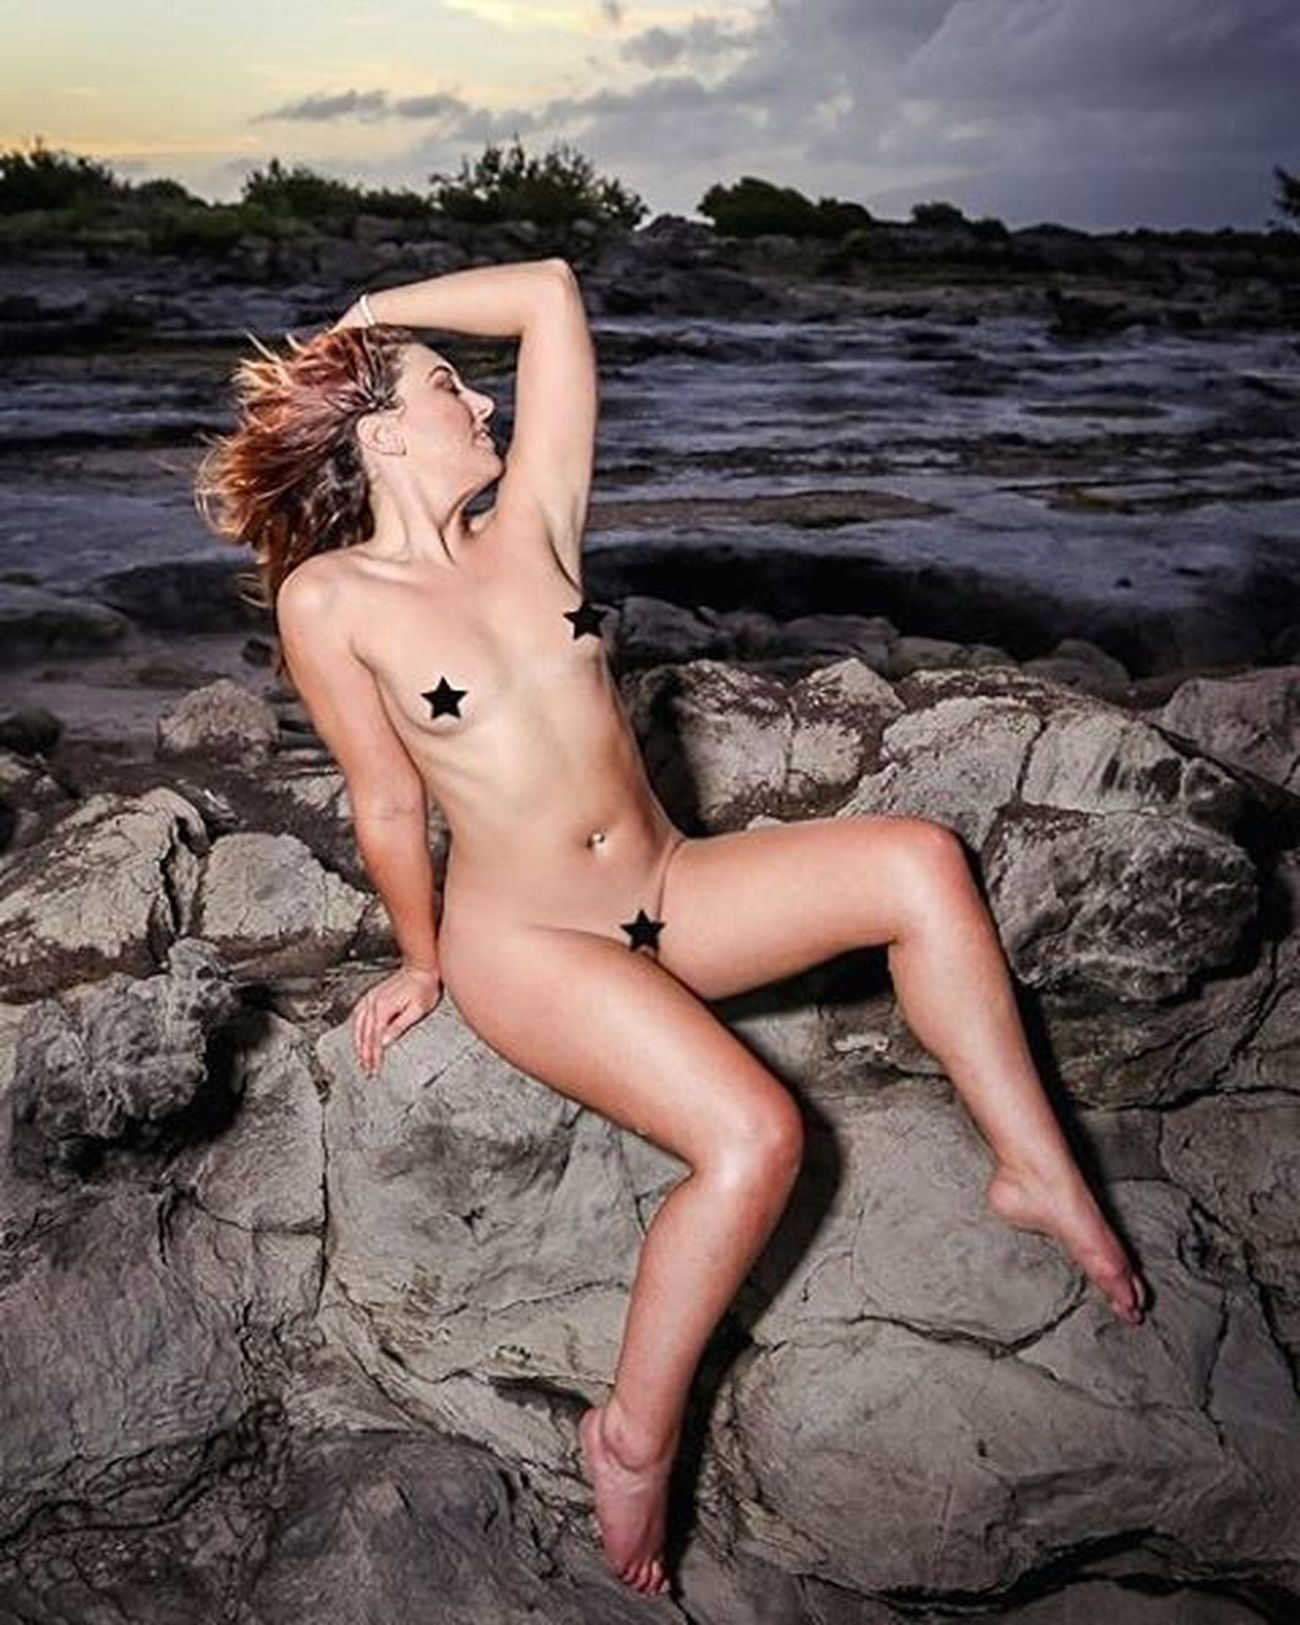 Sea siren Tropical Artnude Beautiful Goddesses Freethegoddess Blessed  Youonlyliveonce Befree Amazing Model Love Beauty Mauiphotography Mauinokaoi Mauiportraits Sea Seanymph Siren Seasiren Maui Hawaii Vixen Nature Girls Paradise island islandlife ocean sunset